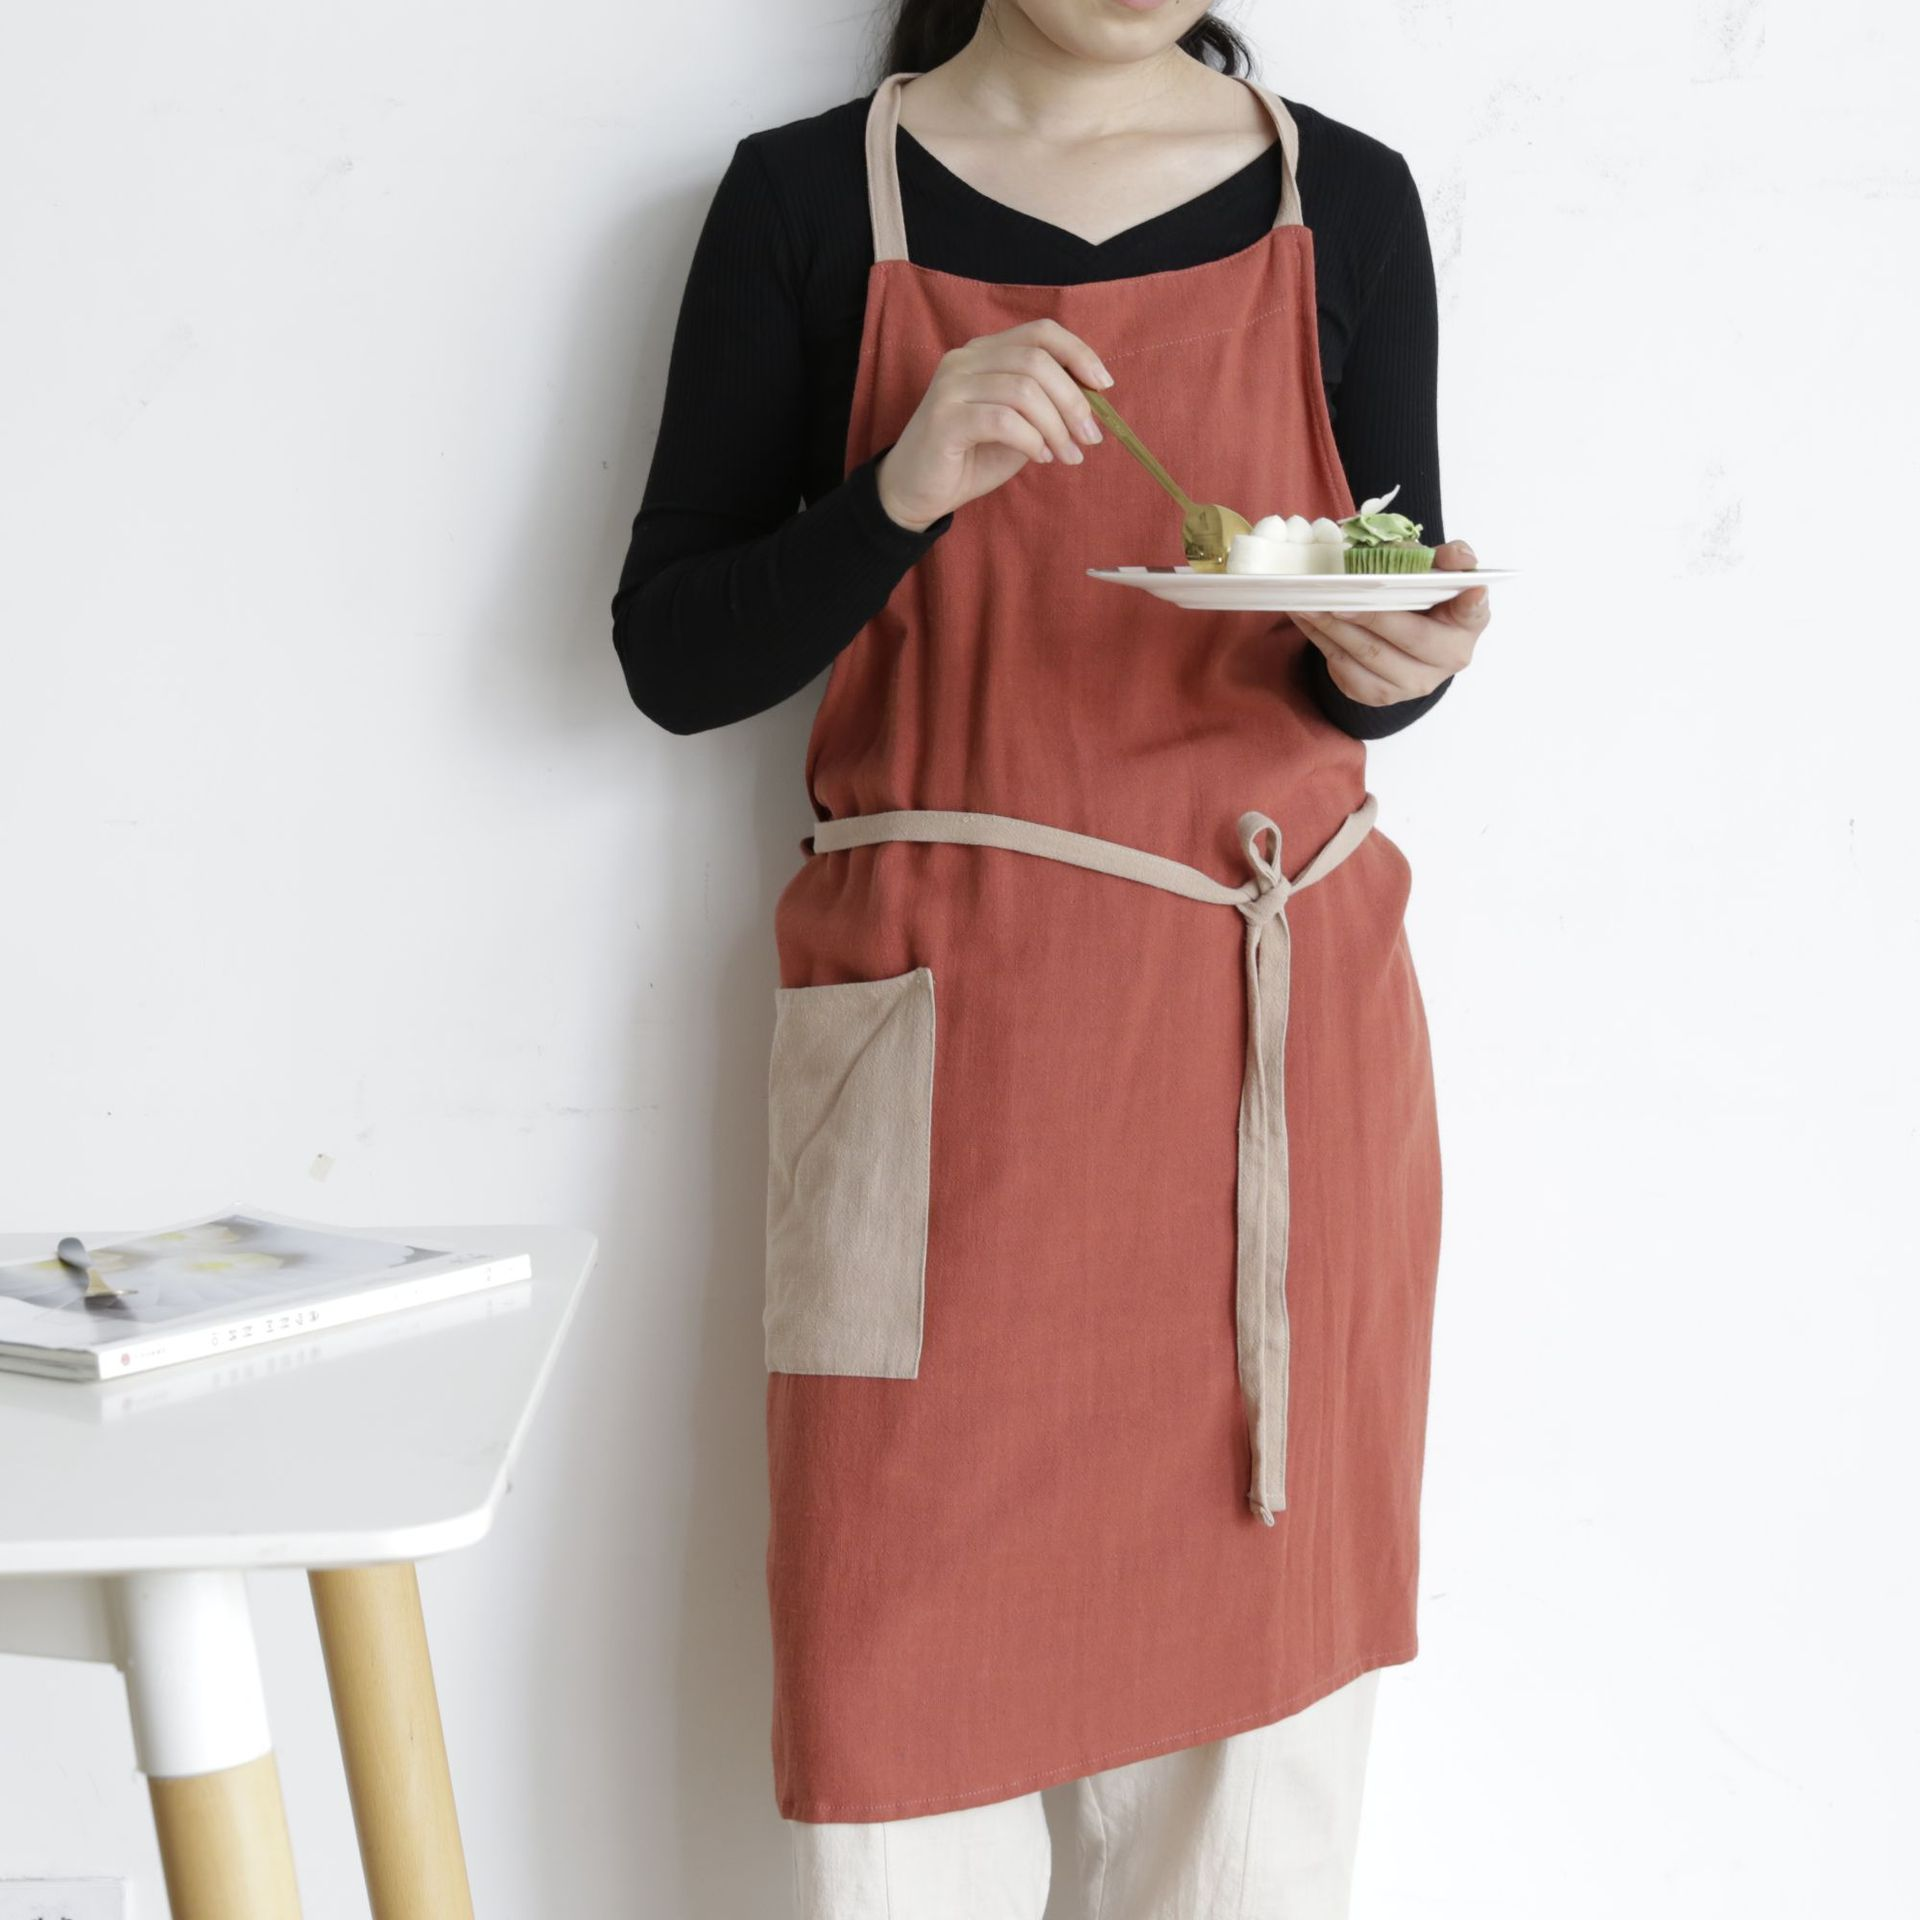 Solid Colors Thin Cooking Kitchen Apron Summer Women Home Cleaning Hairdresser Sleeveless Aprons Work Clothes Kitchens Accessory